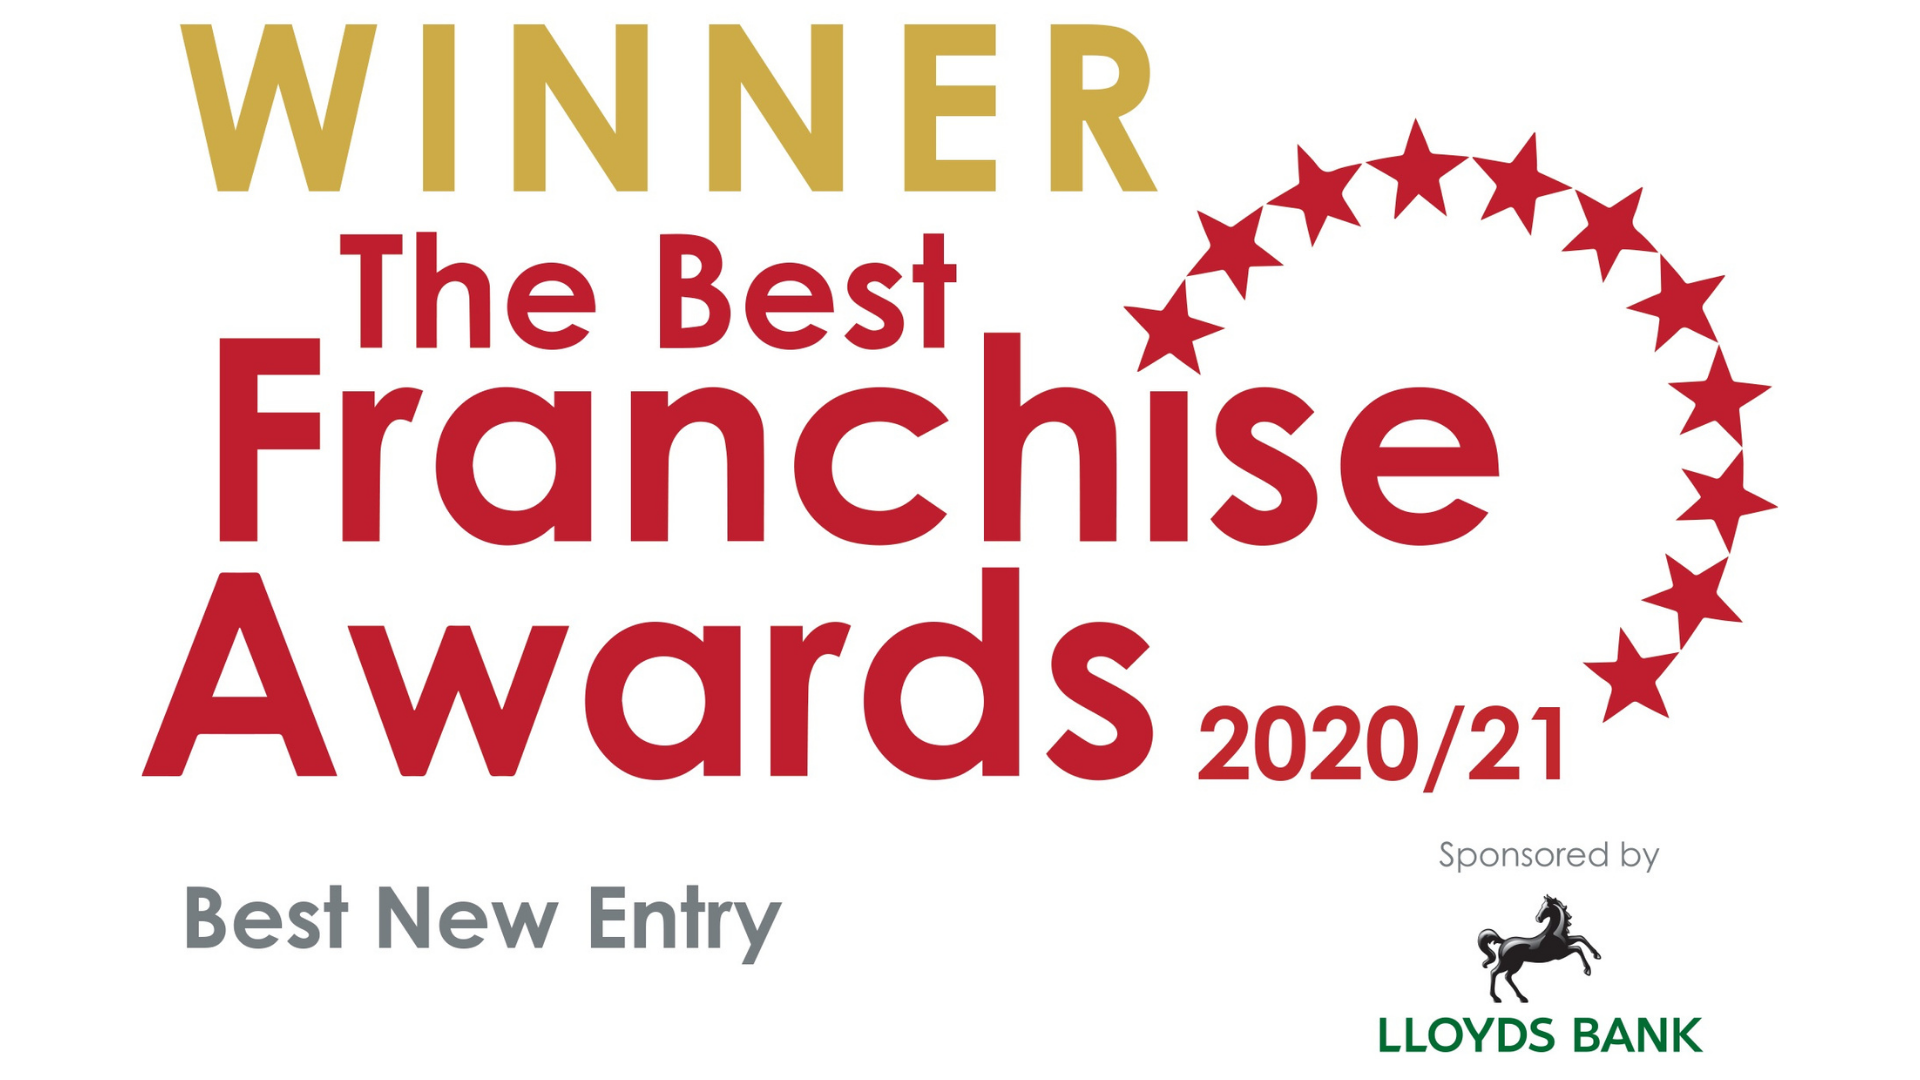 """We Love Pets announced """"Best New Entry"""" winner from 2020/21 Best Franchise Awards"""